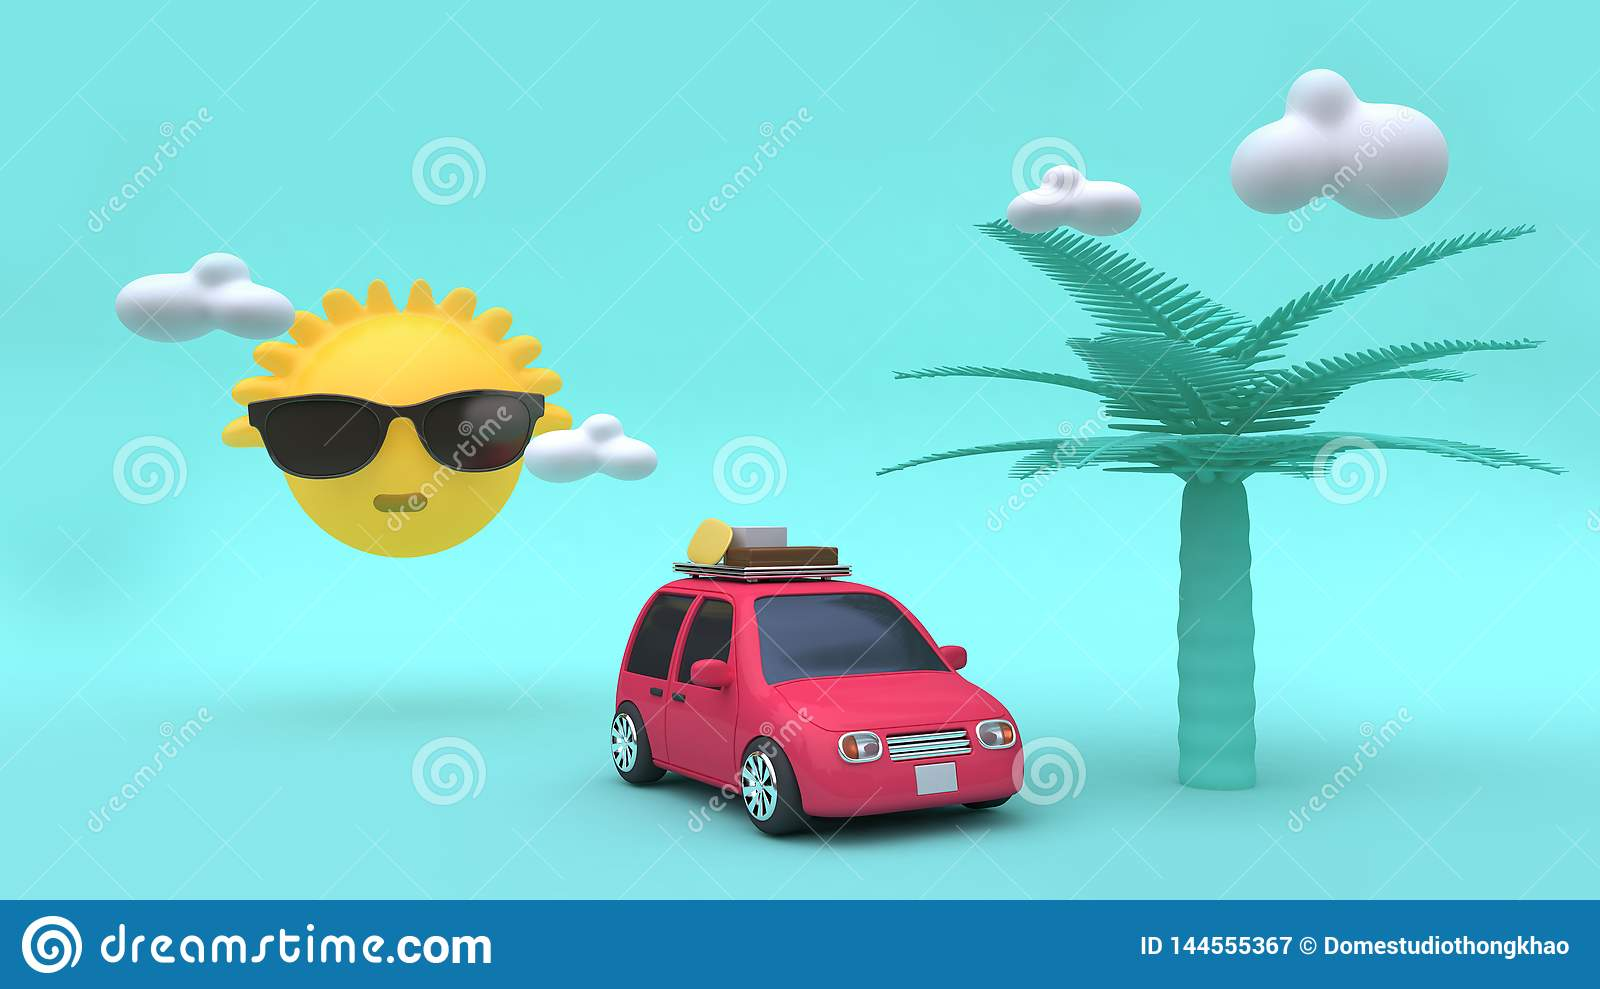 Yellow sun clouds coconut tree cartoon style red car with many objects 3d rendering holiday,going-travel,sea,beach,summer